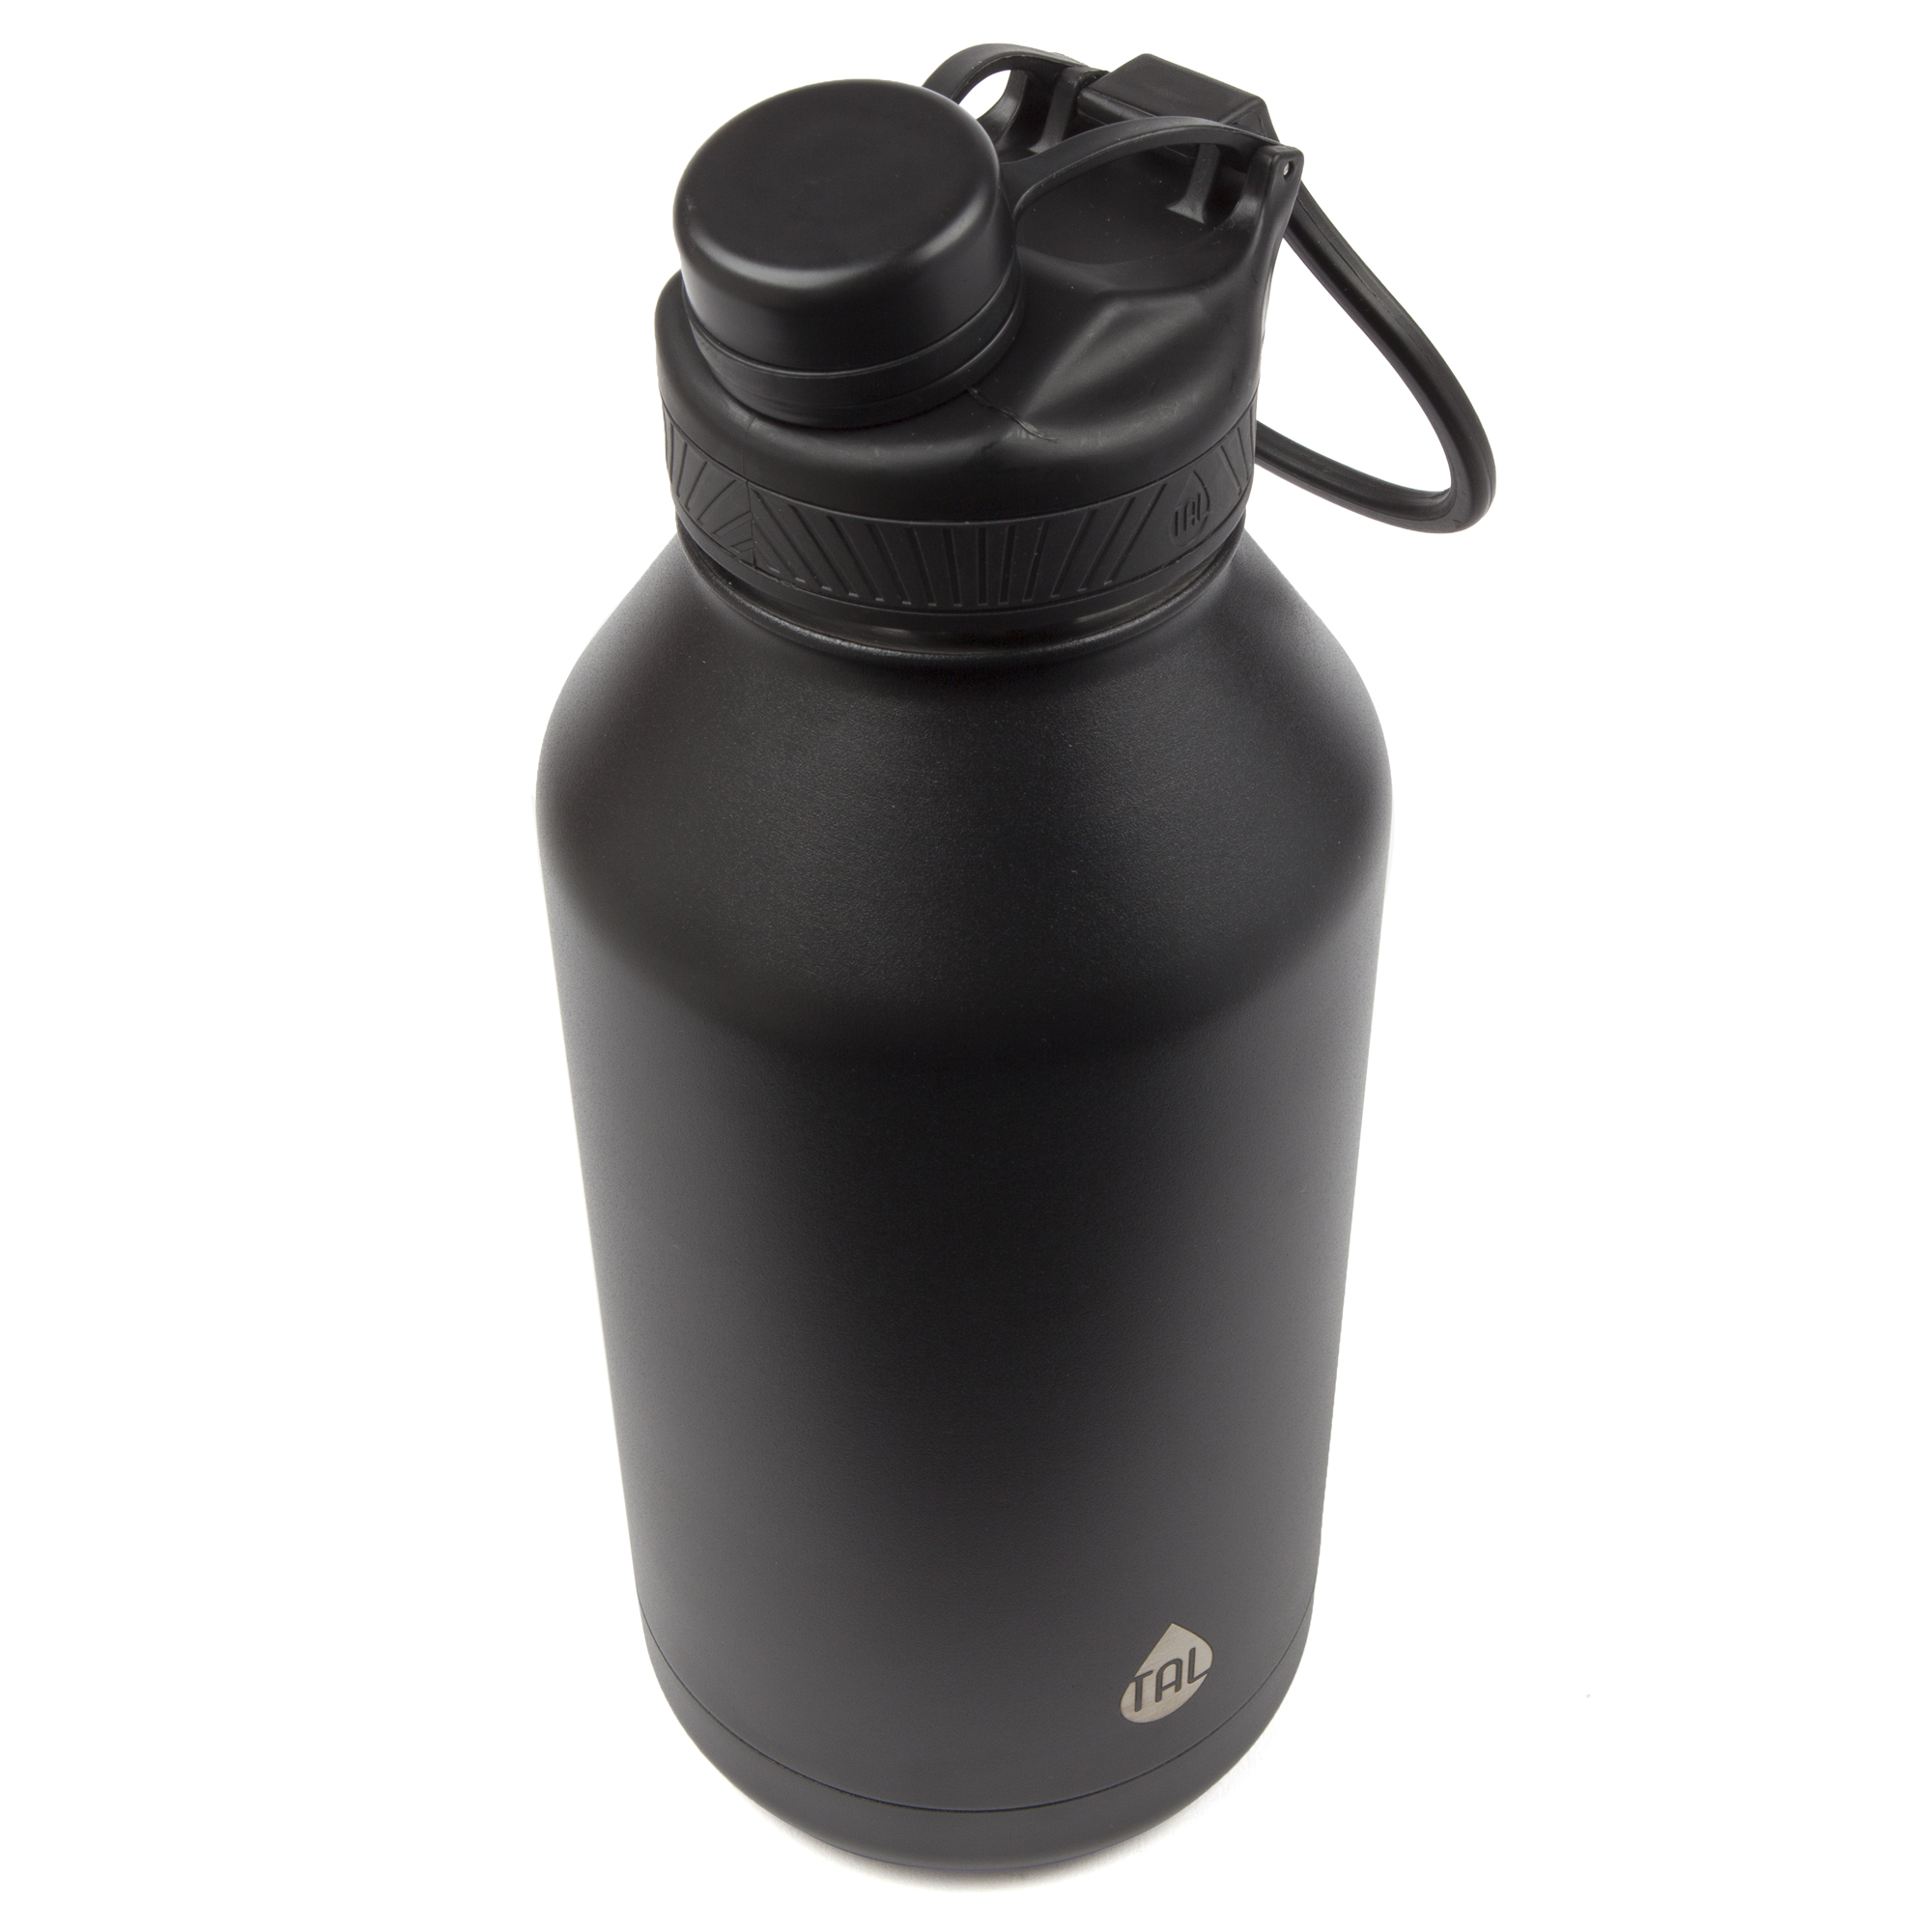 0a6449d09e7 TAL Black 64oz Double Wall Vacuum Insulated Stainless Steel Ranger™ Pro